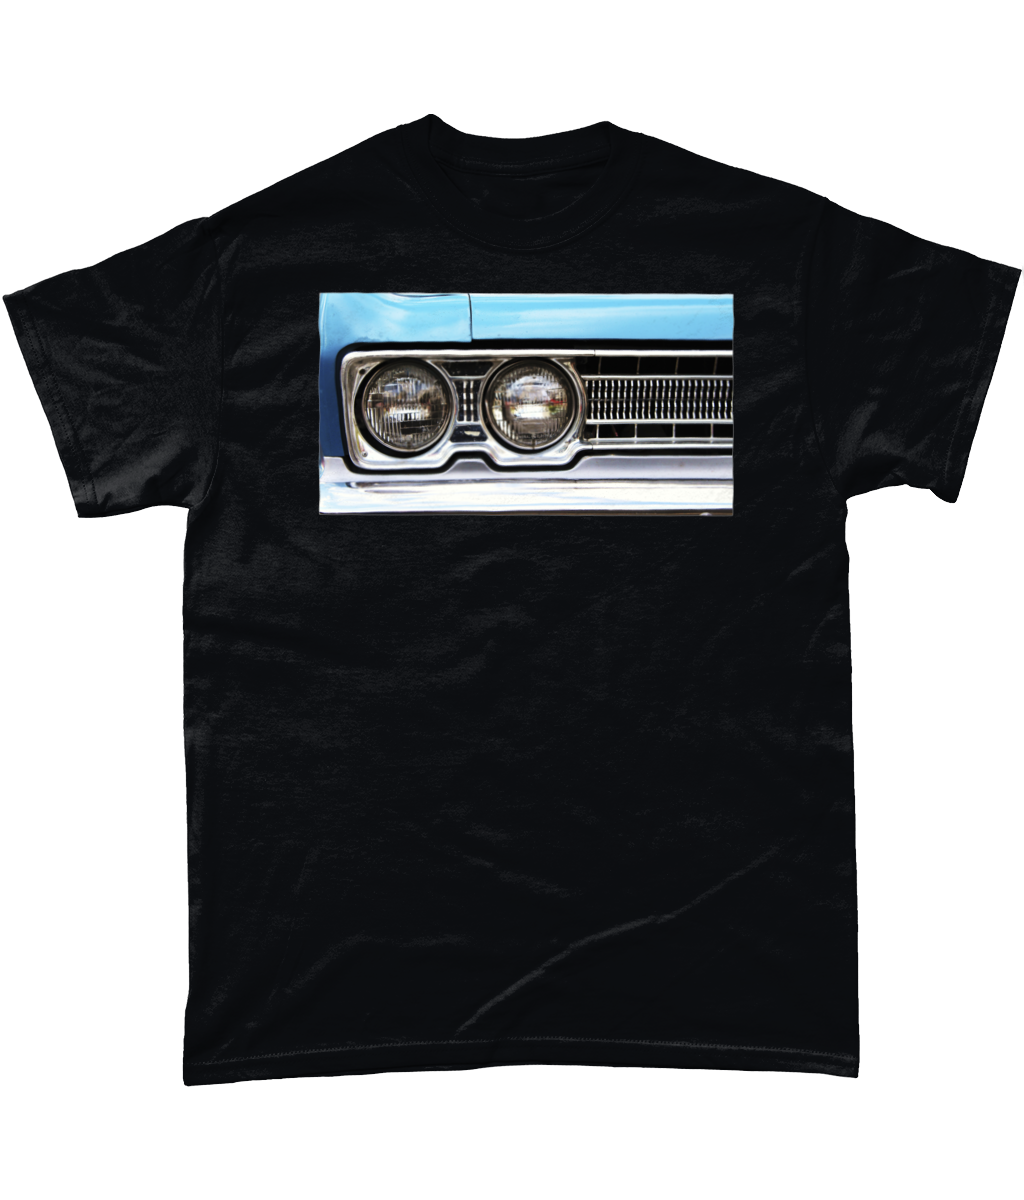 Blue Lights Vintage Car Heavy Cotton T-Shirt - ByCandlelight27